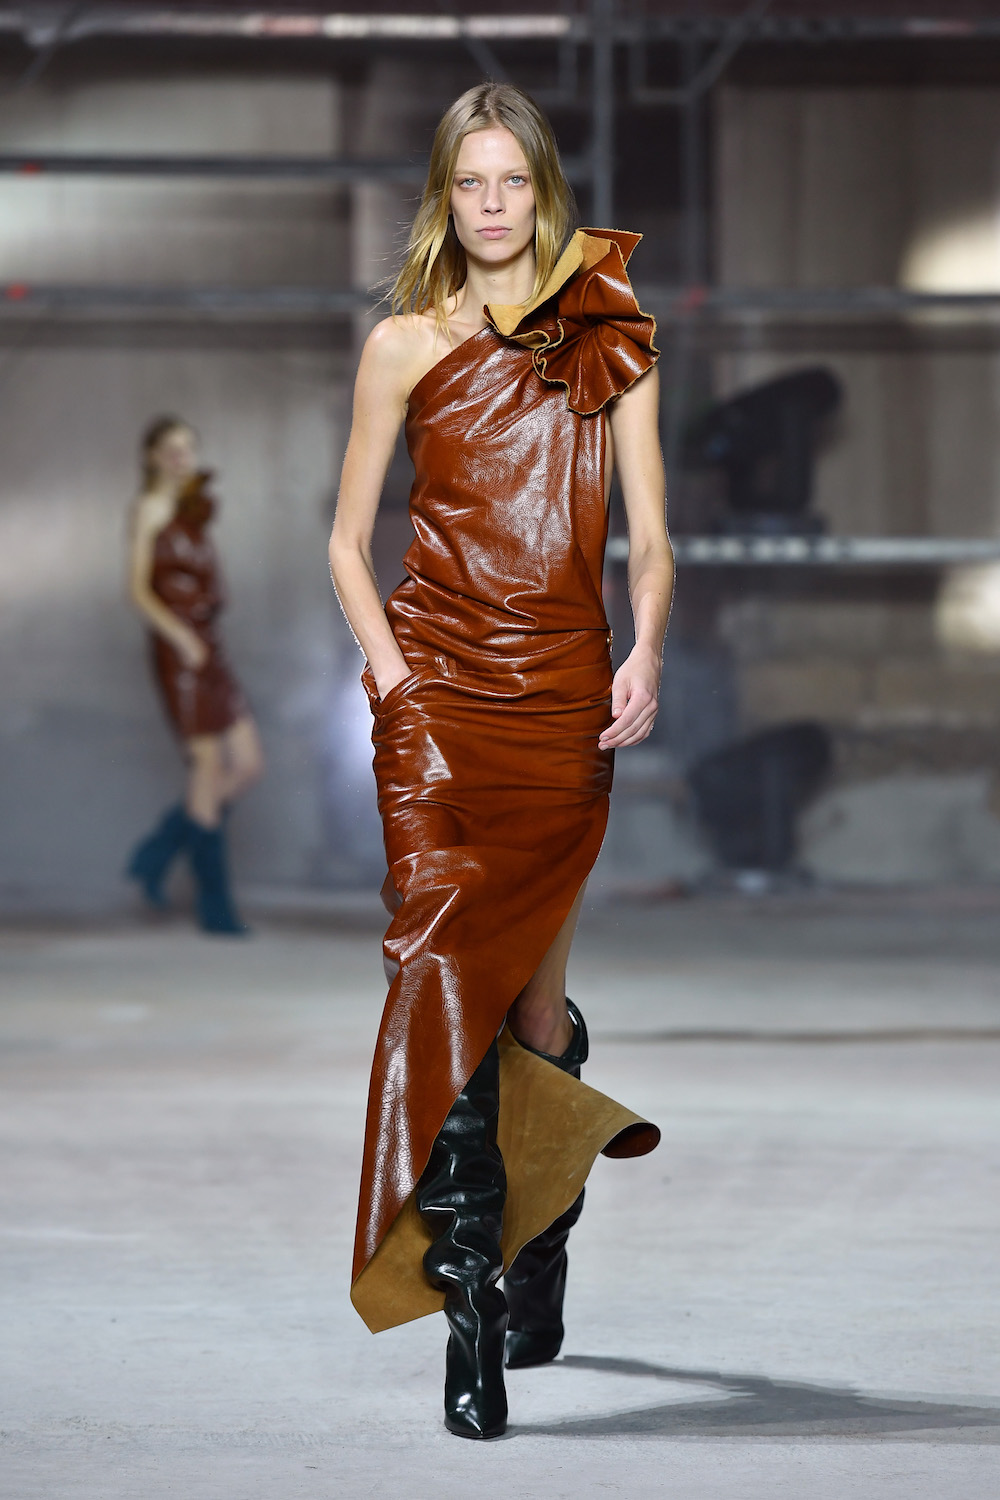 Shine, Shine, Shine: Paris Fashion Week Gets Glossy With Leather